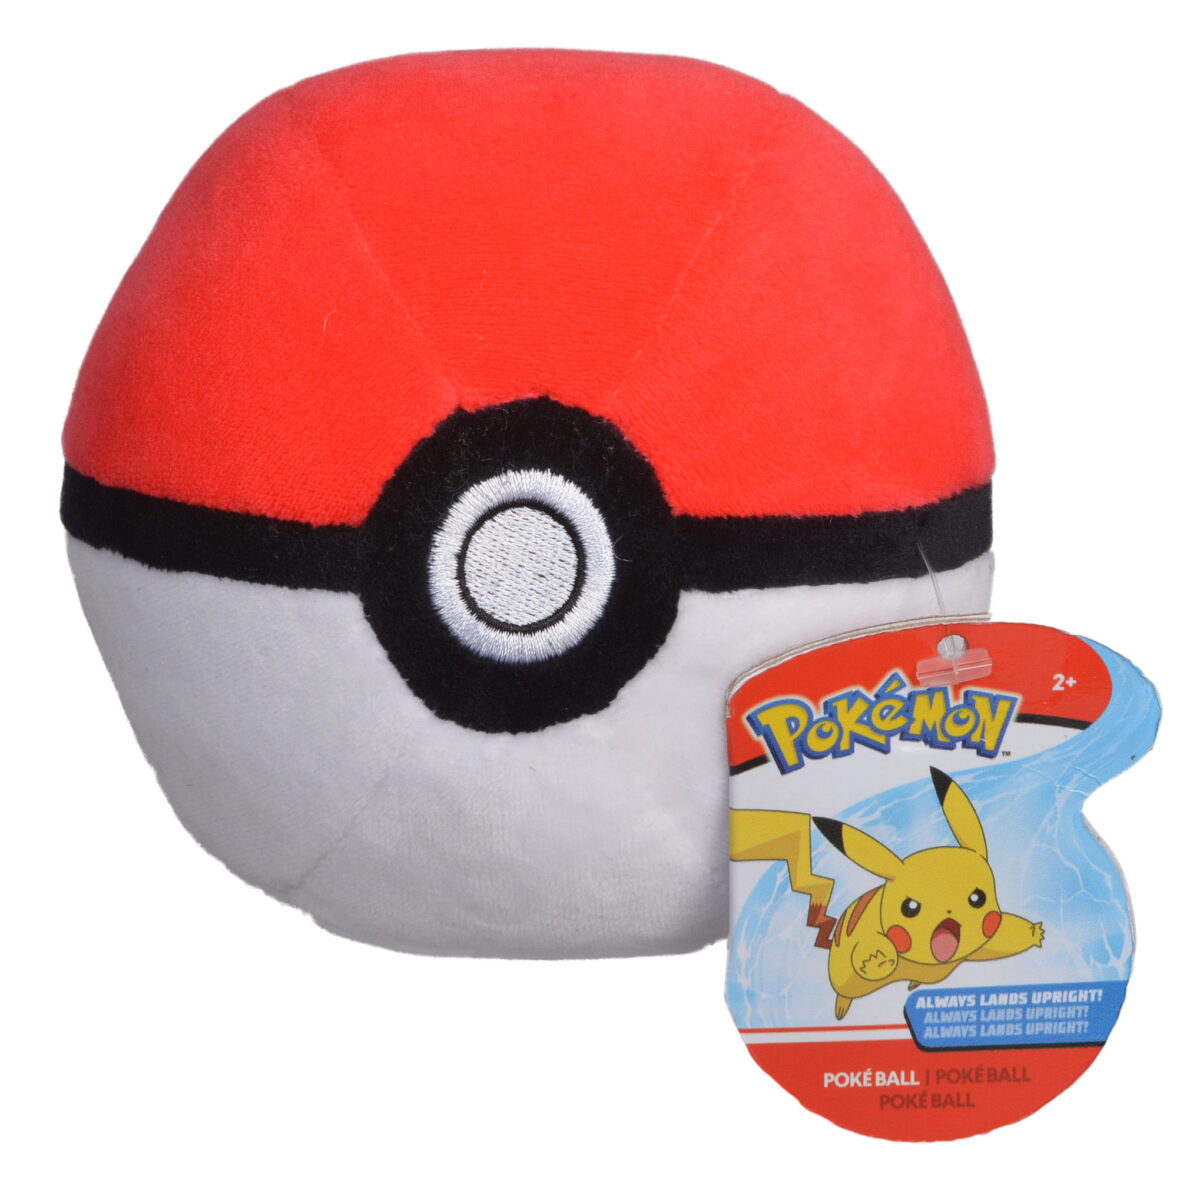 Picture of a plush pokeball